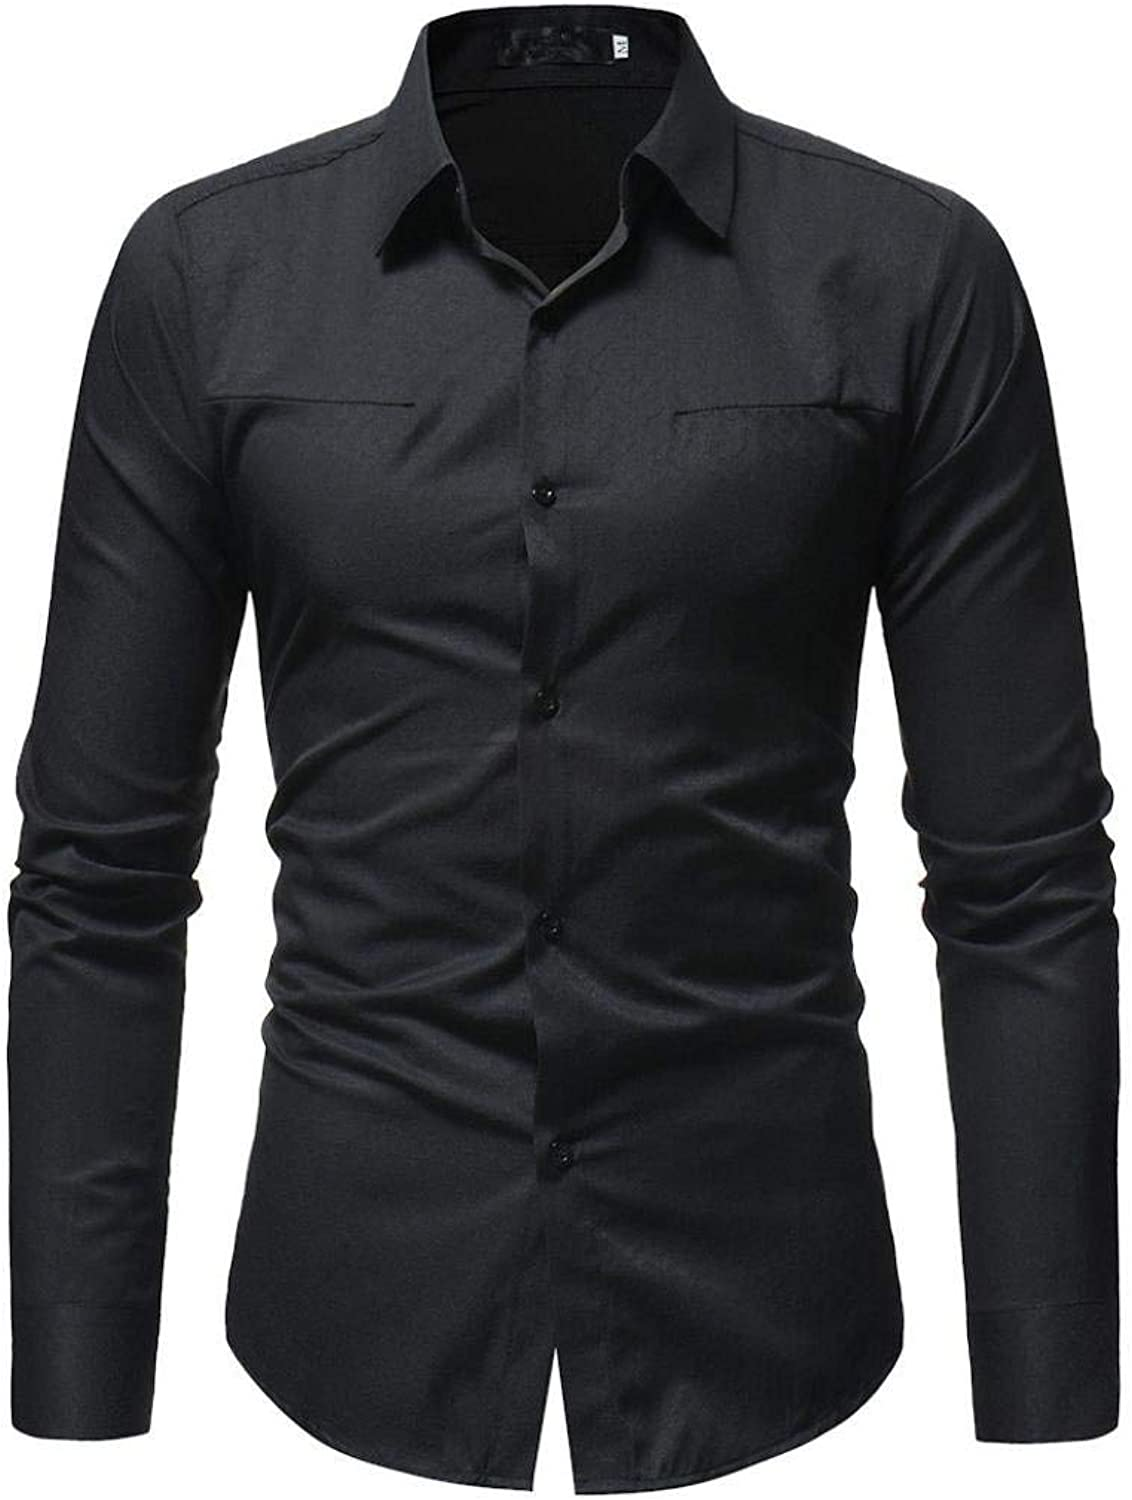 Men Shirt Style White Solid color Male Casual Long Sleeve Casual Business Cool Workplace Comfort Slim Fit Shirt